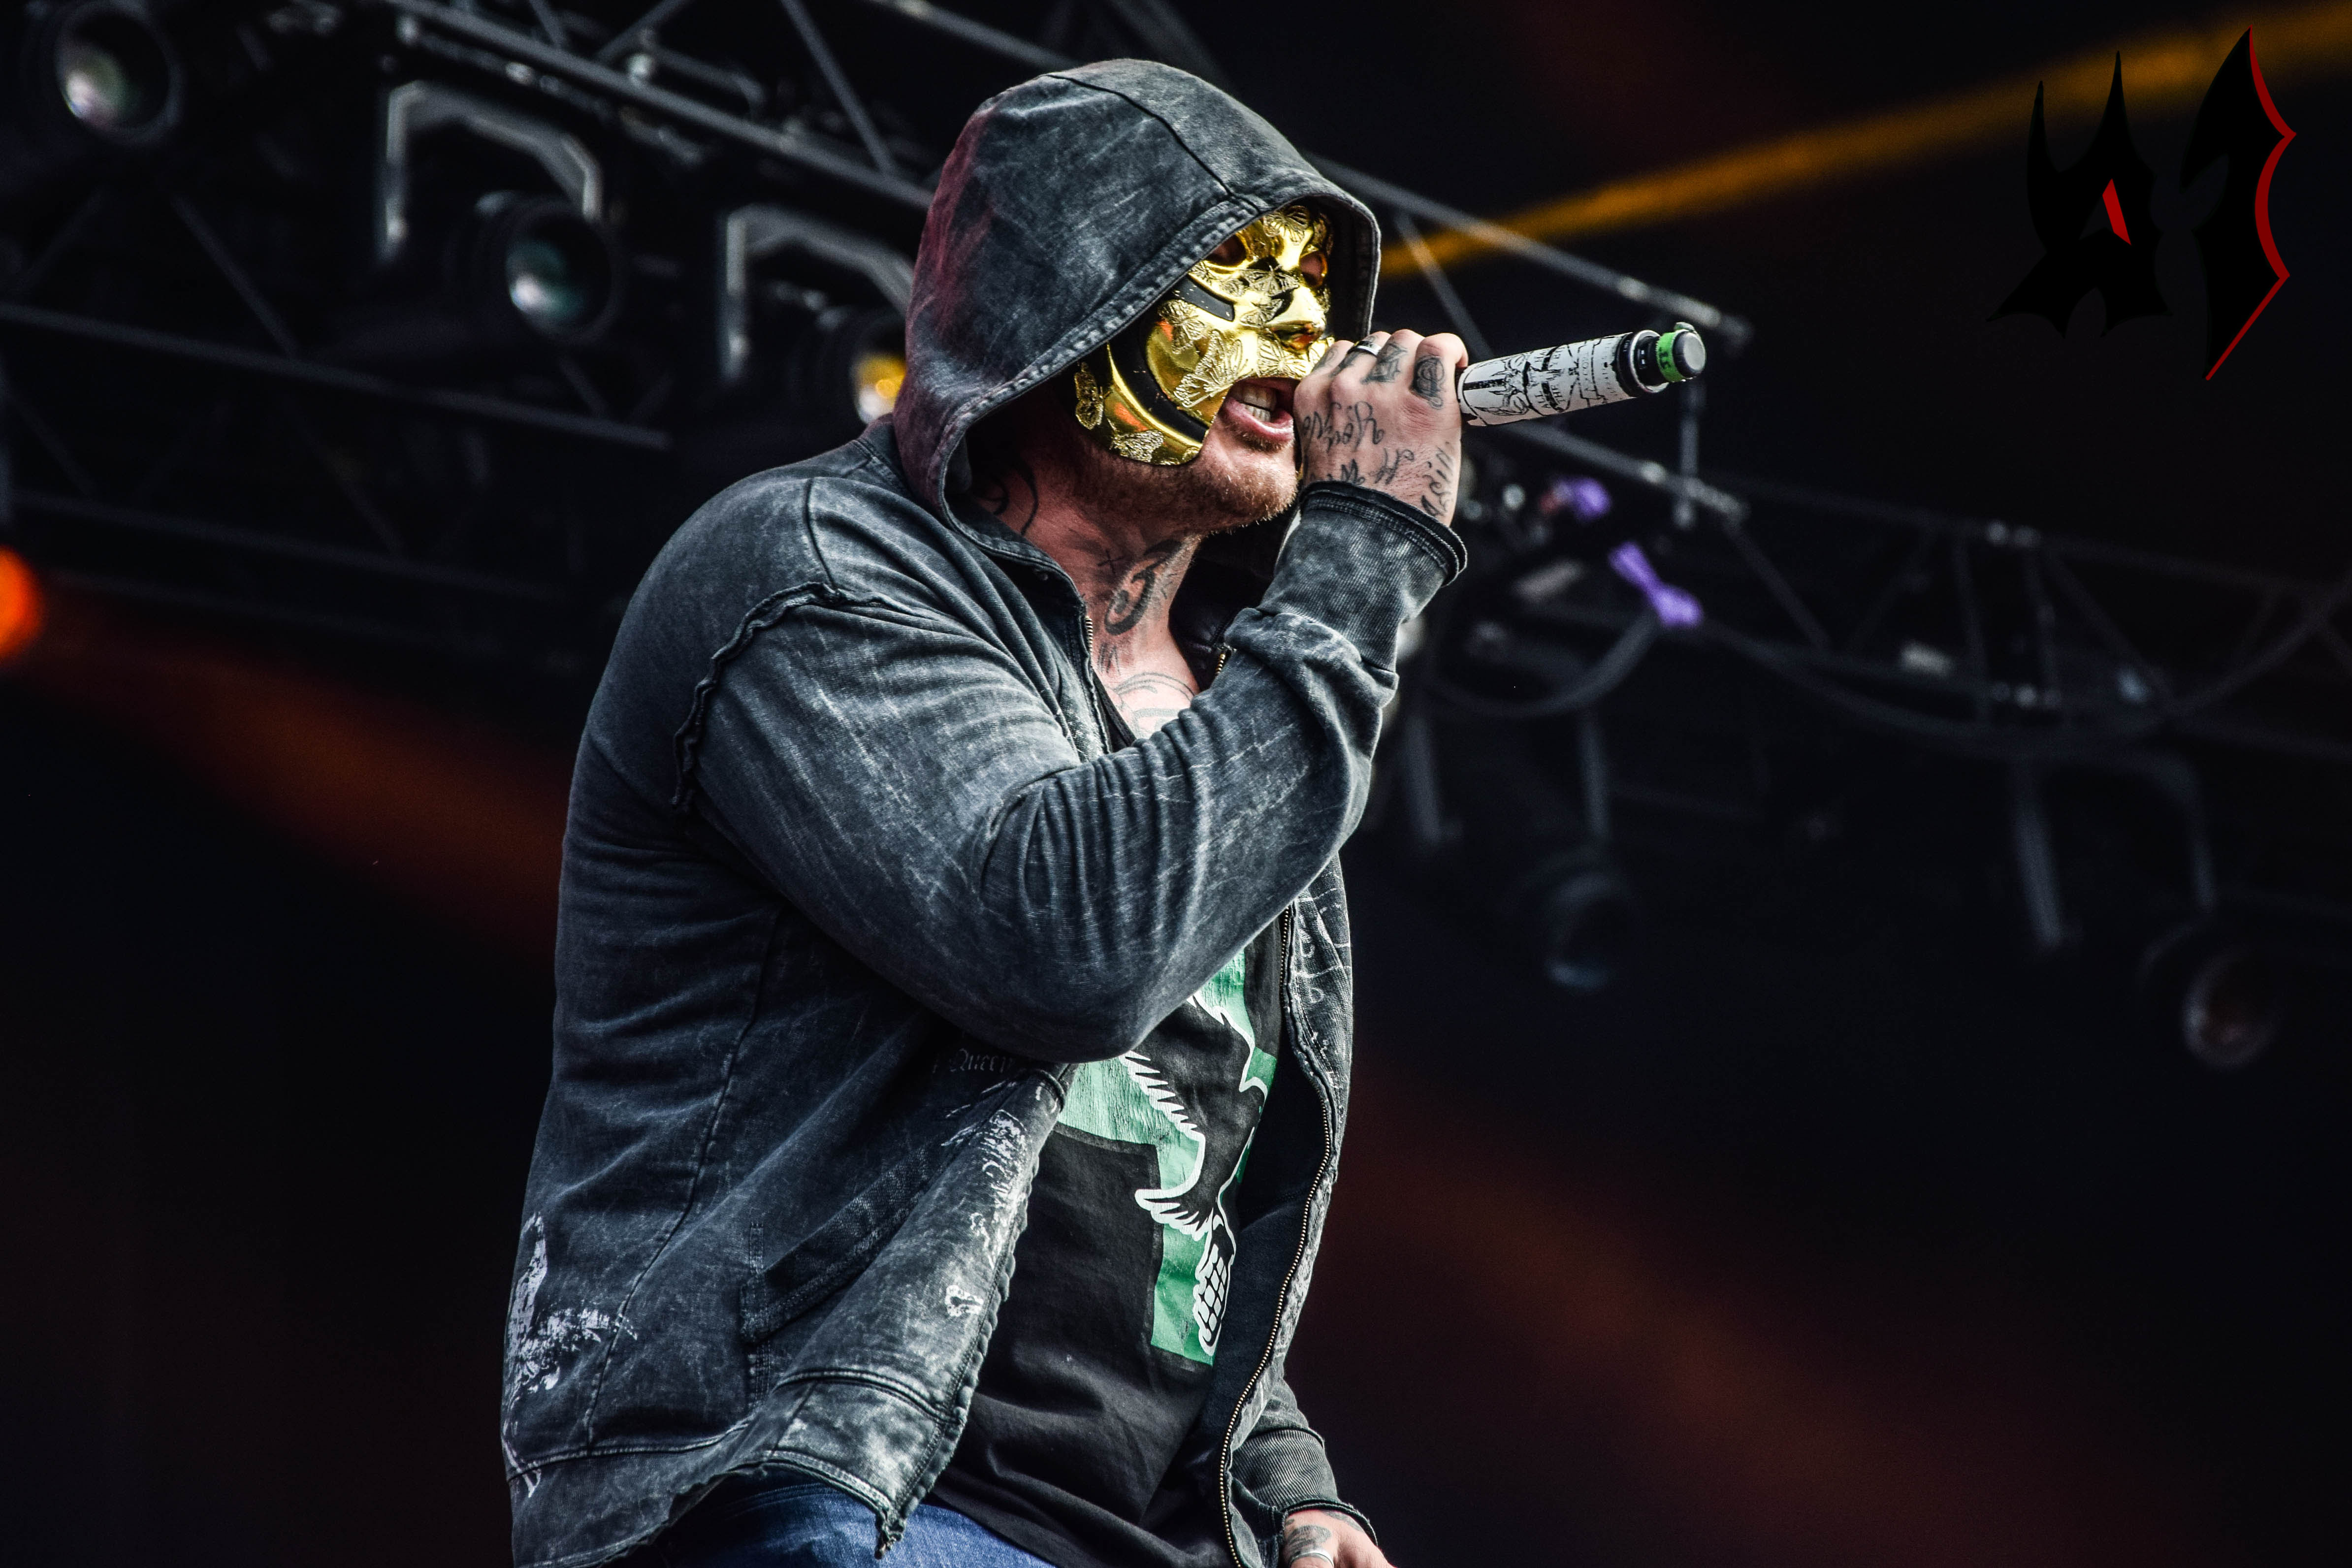 Donwload 2018 – Day 2 - Hollywood Undead 10